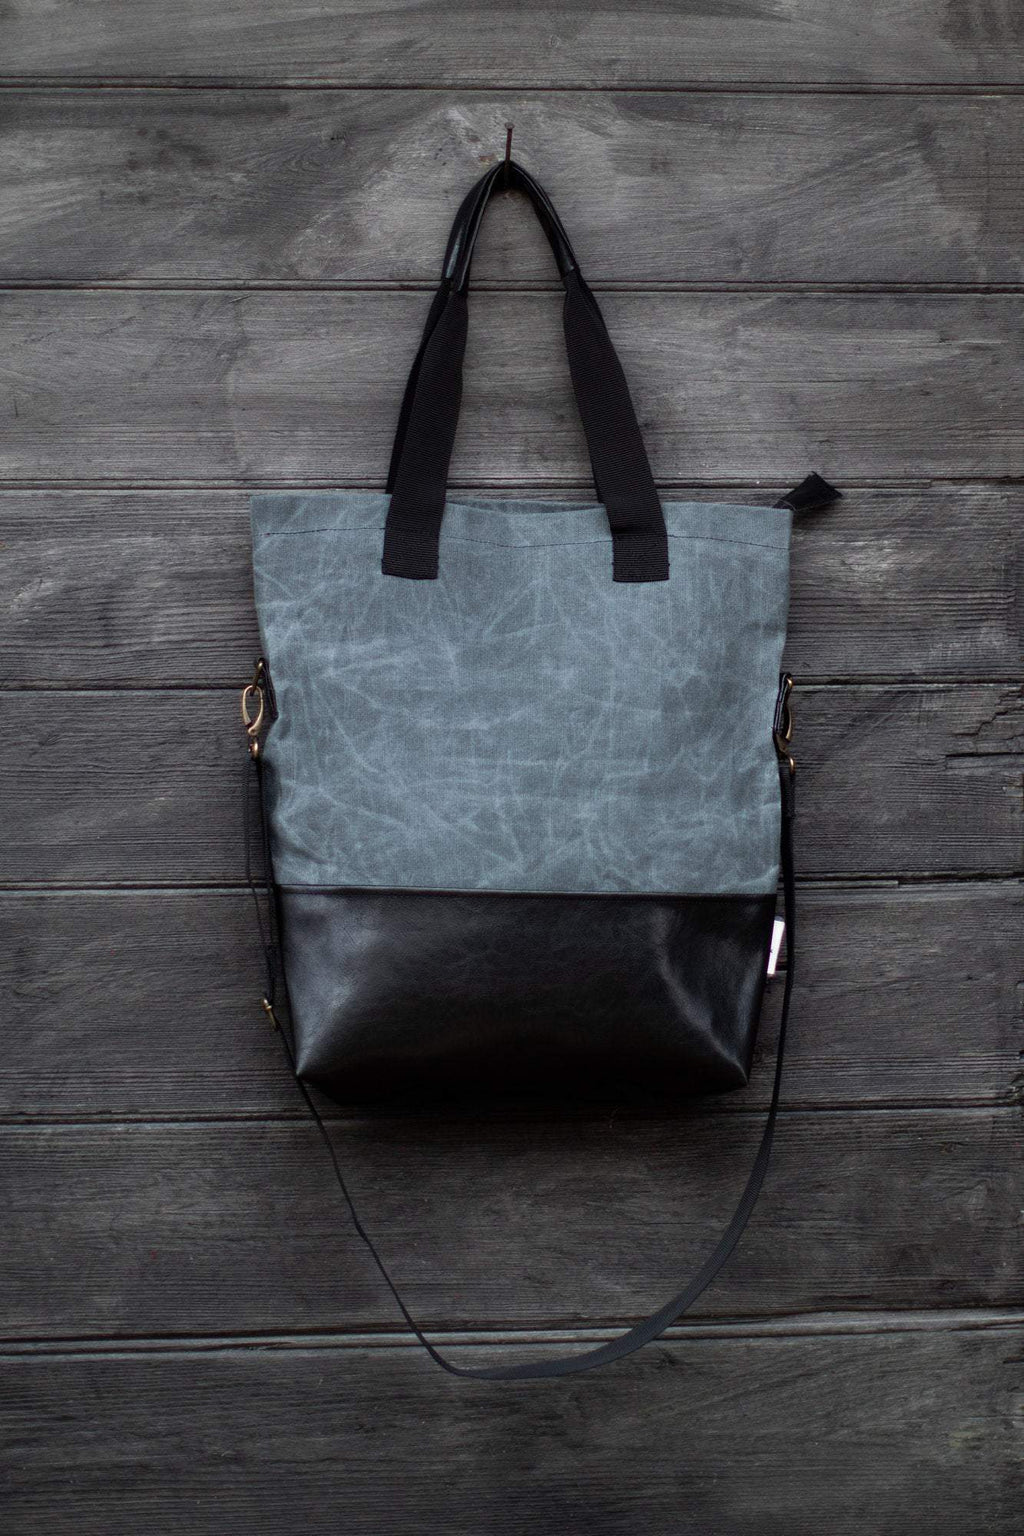 Bag - Handmade Tote Bag Grey Wolf